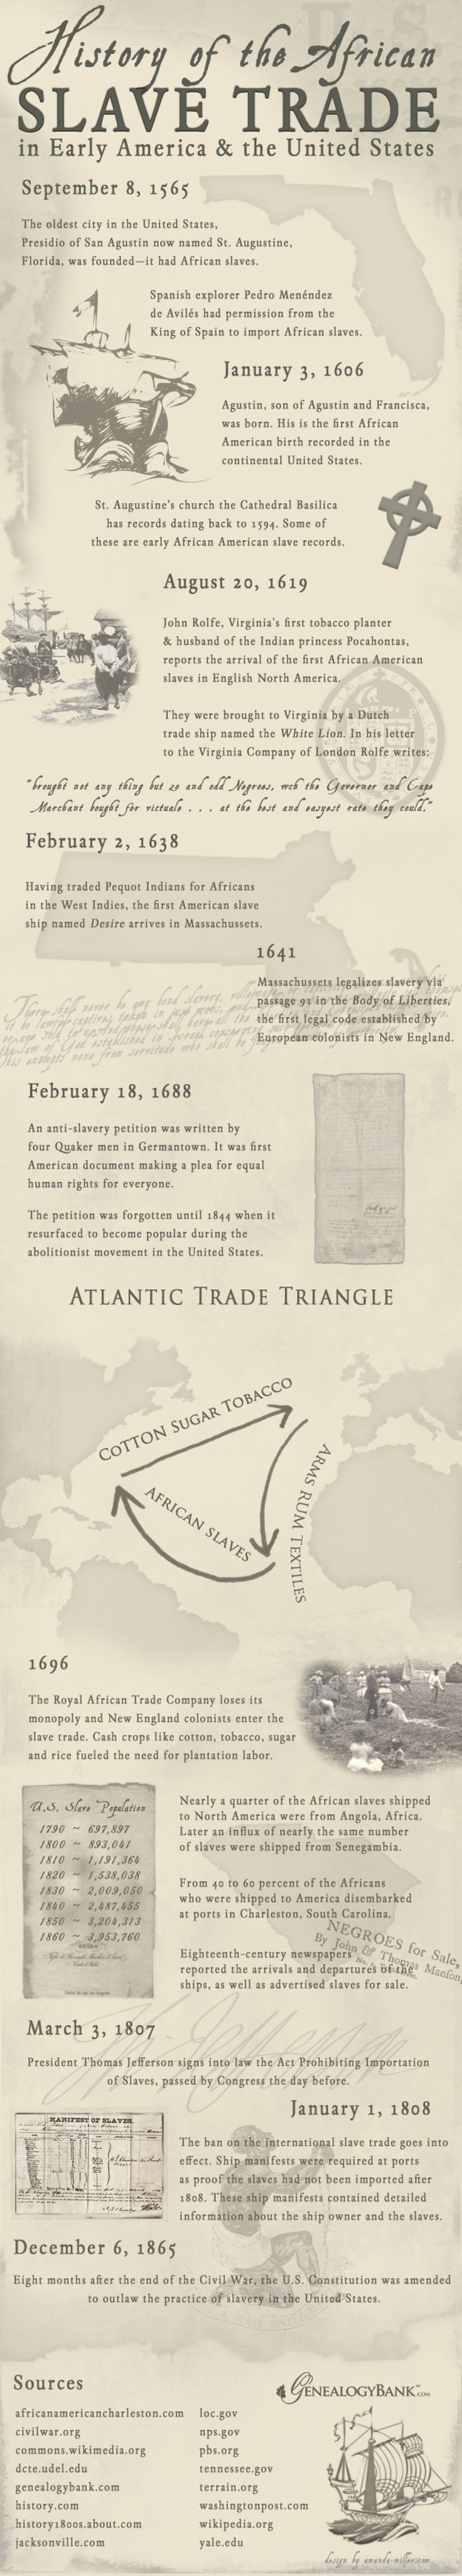 History of the African Slave Trade in America Infographic